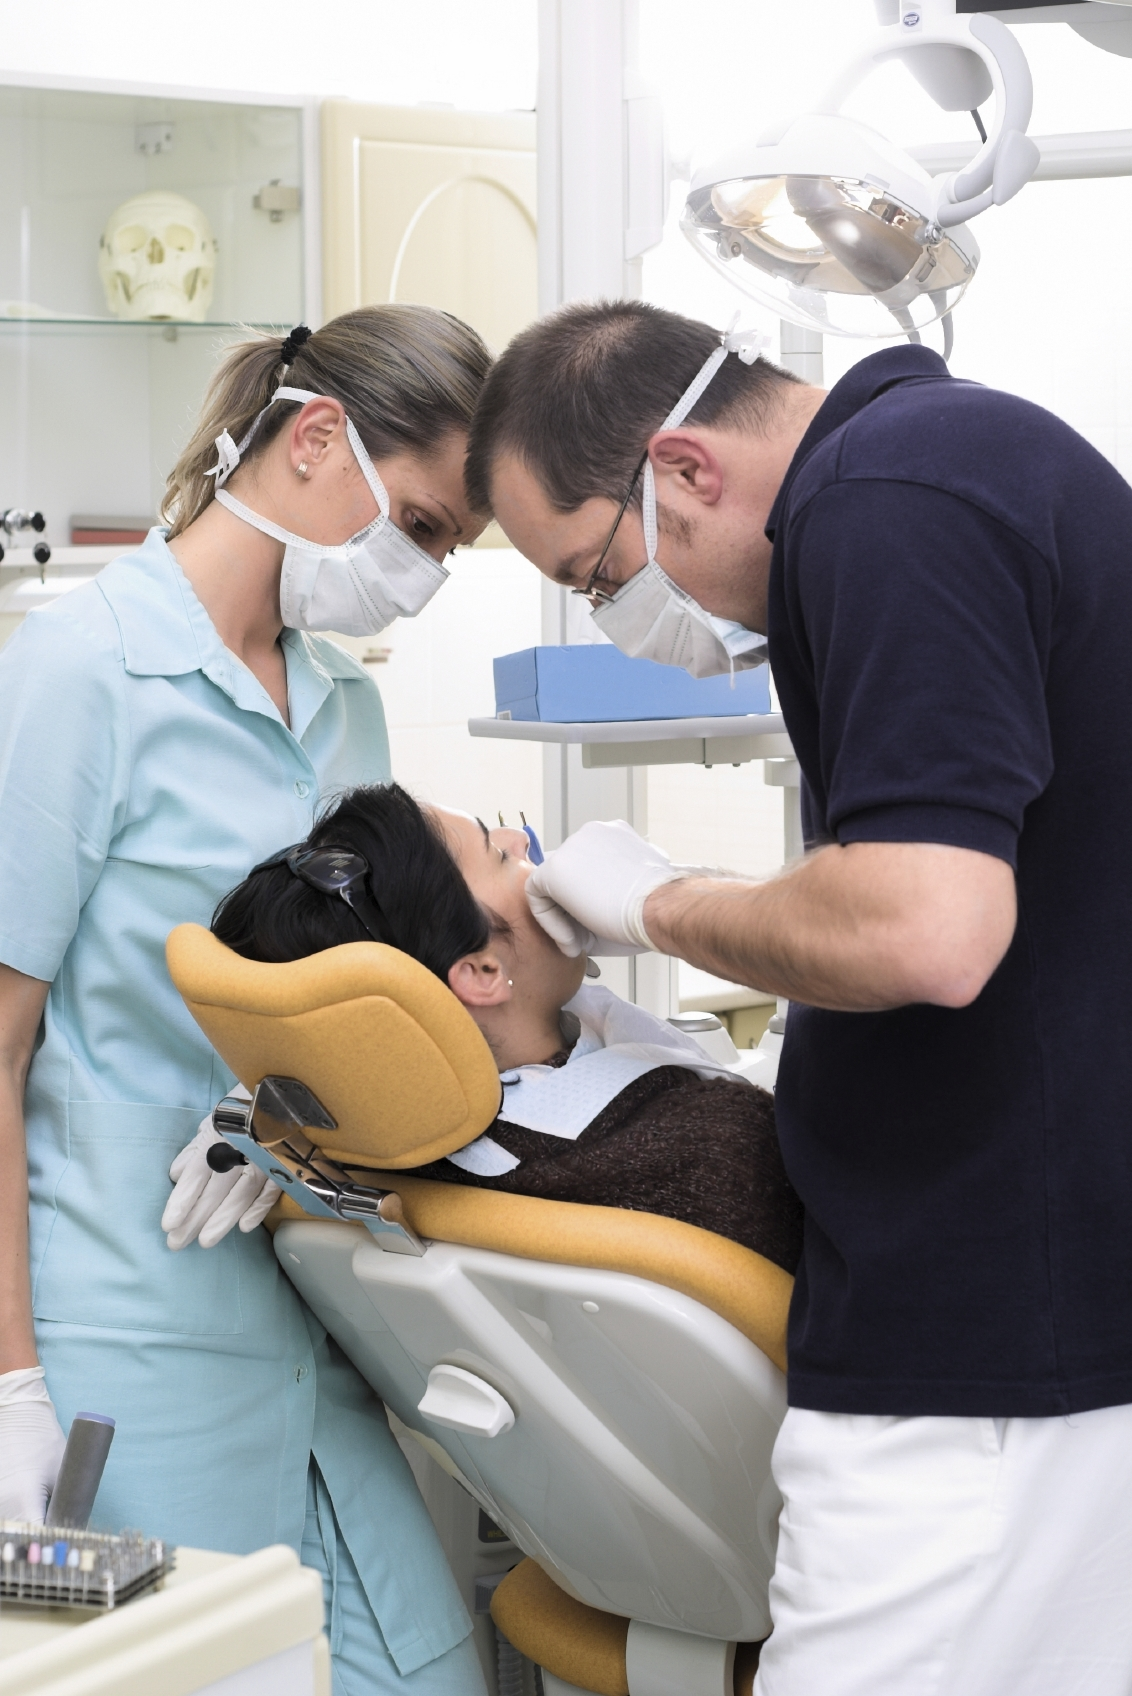 Dental Care Insurance Plan for Expats